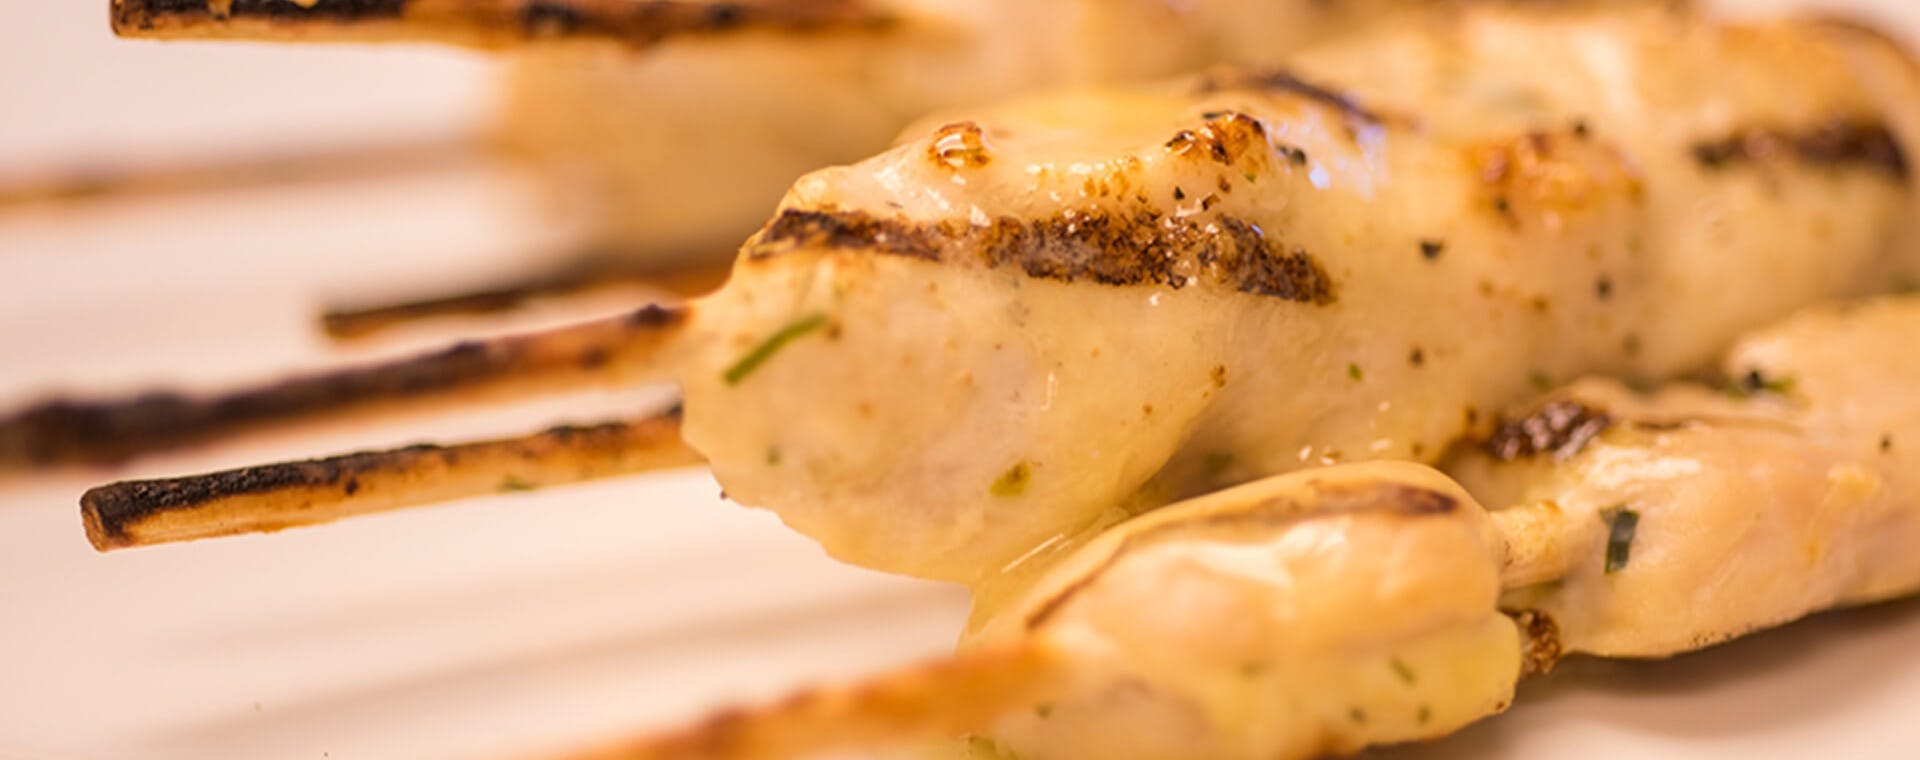 Chicken Skewers with Flavored Butter